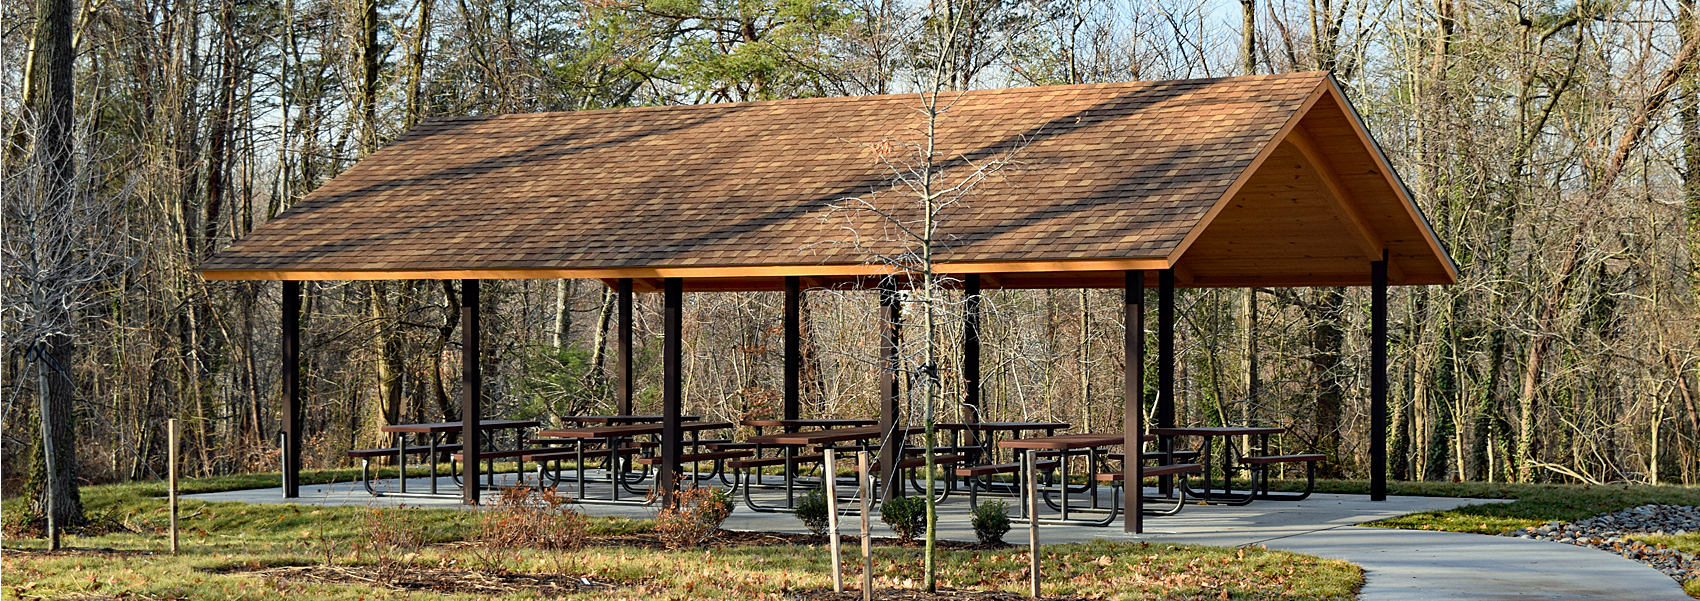 Hidden Pond's picnic shelter